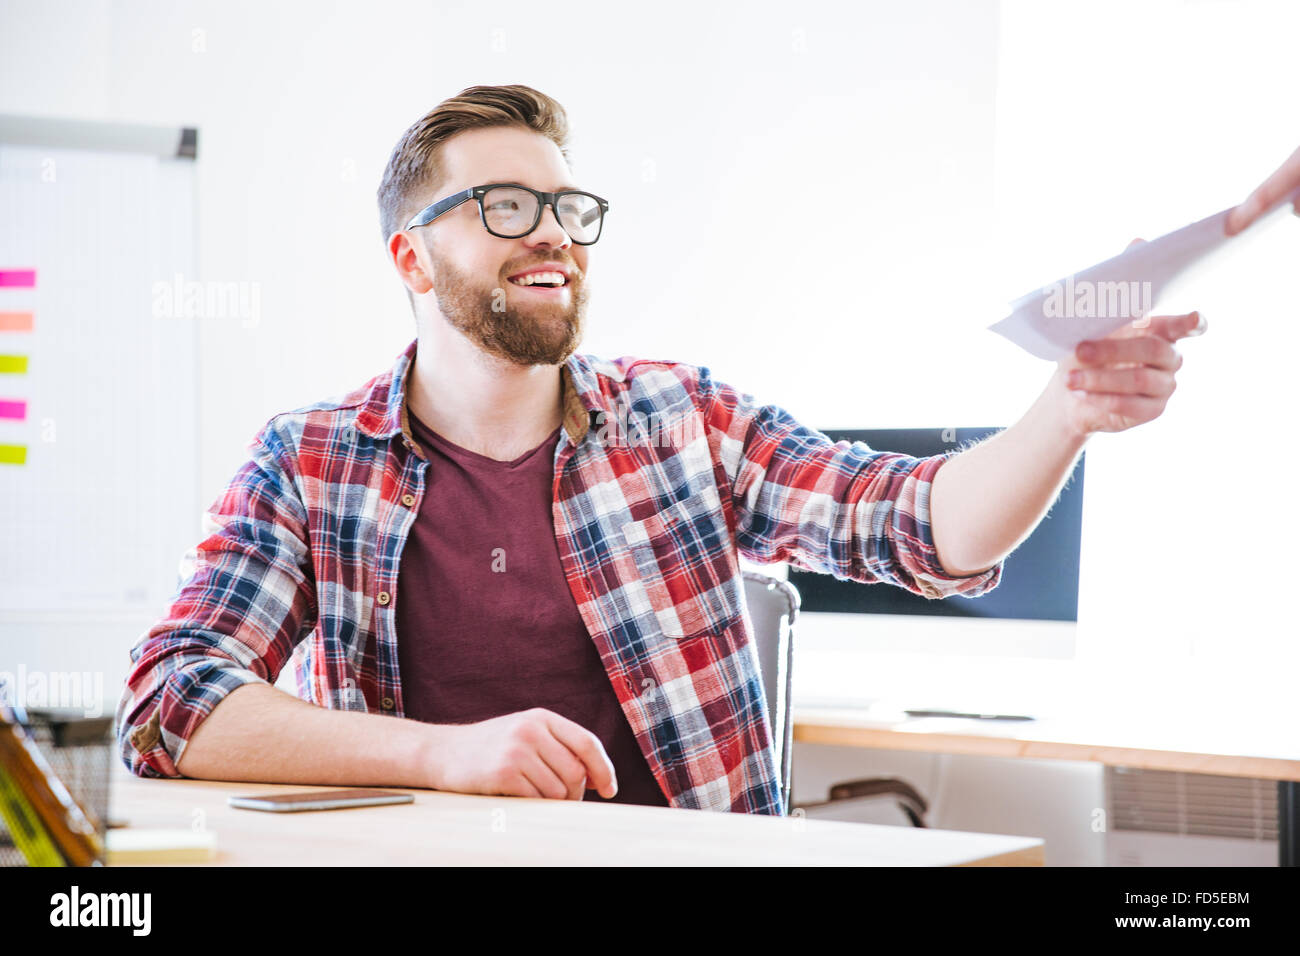 Cheerful attractive young man in checkered shirt siting on workplace and receiving documents - Stock Image